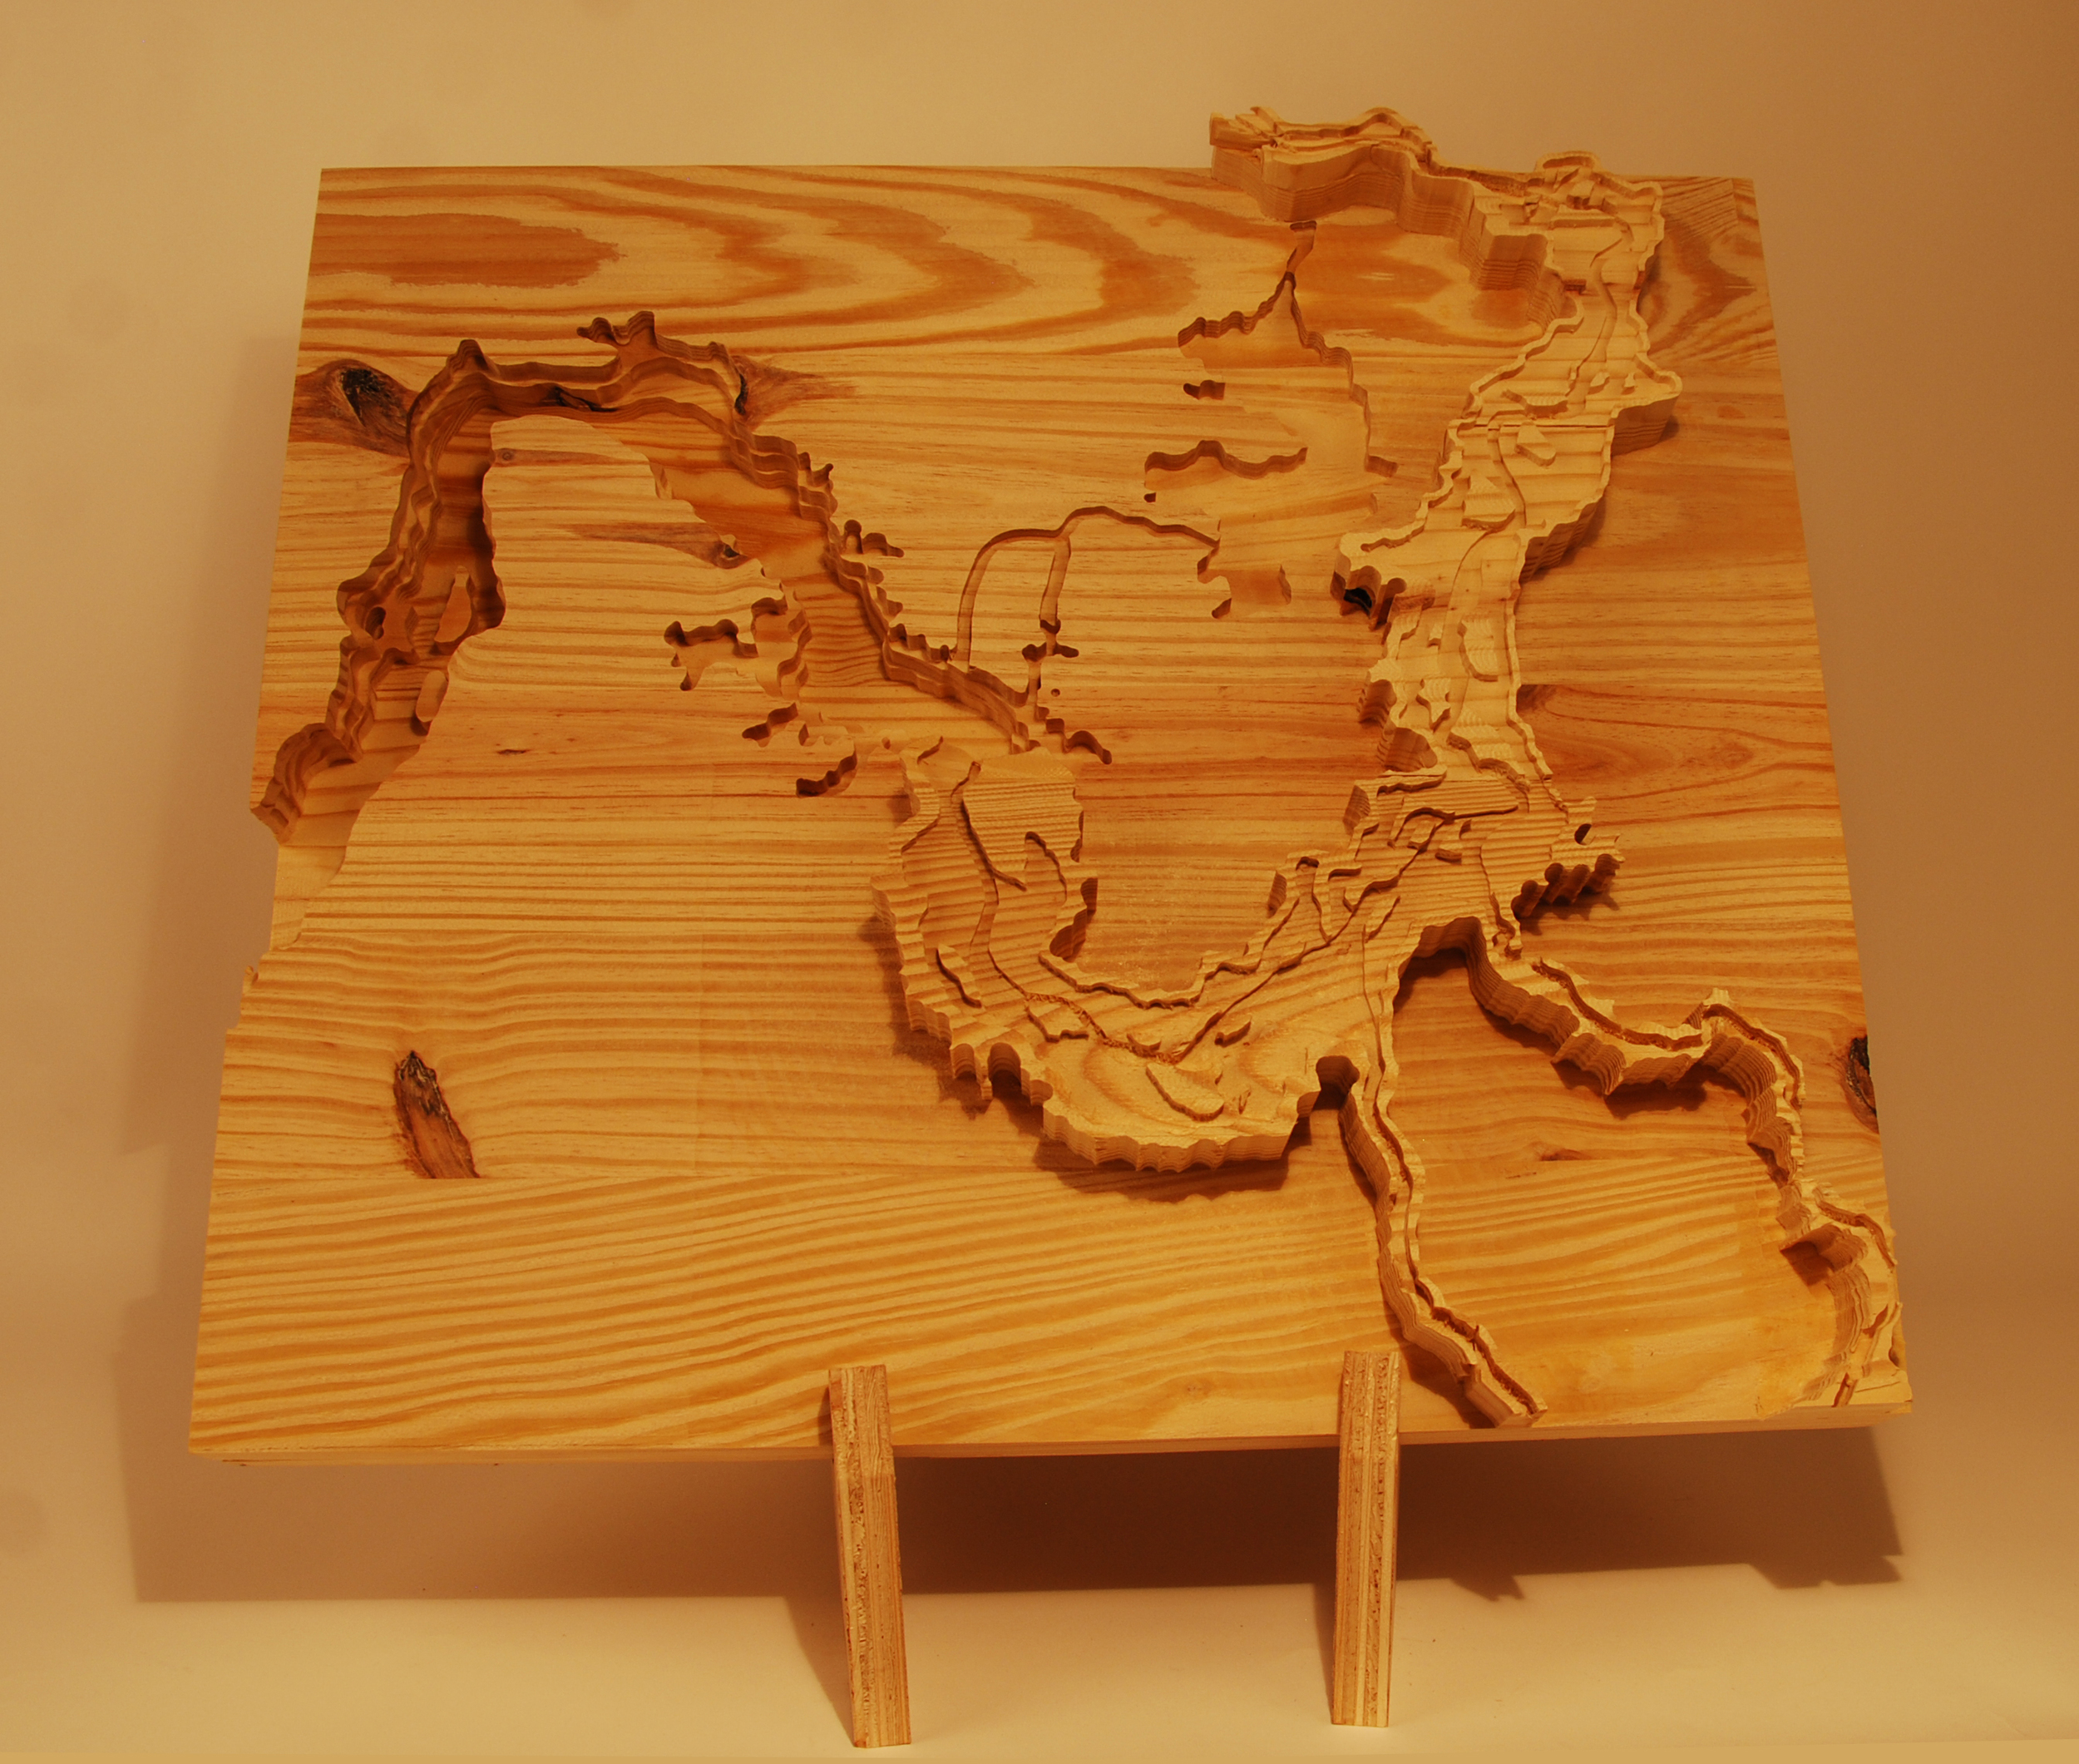 PHYSICAL CONCEPT AND SITE MODEL DEPICTING THE INVERSE EFFECTS OF FLOODING IN THE Z AXIS